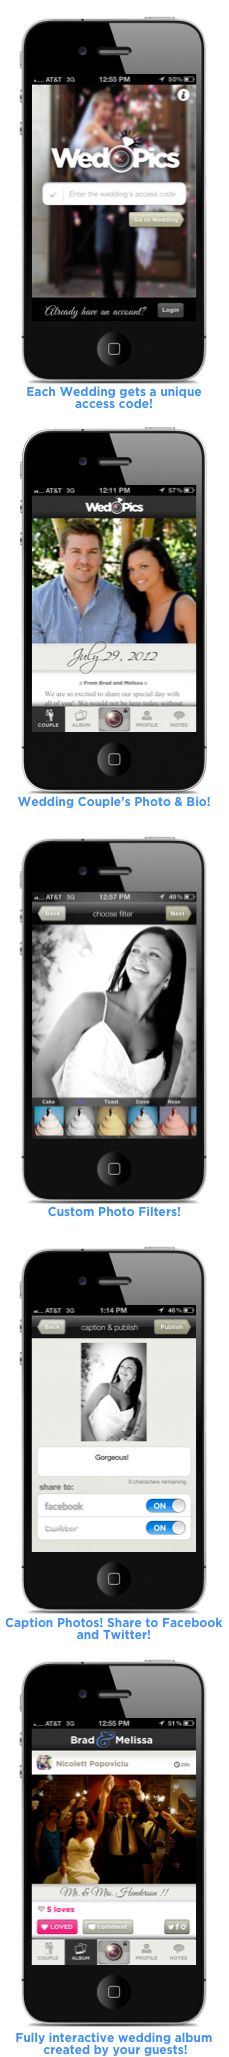 WedPics is an interactive wedding album created by your guests (www.WedPics.com). Spend more time enjoying your memories and less time chasing them down. Available for iPhone, Android and Web #DisposableCamerasAThingOfThePast